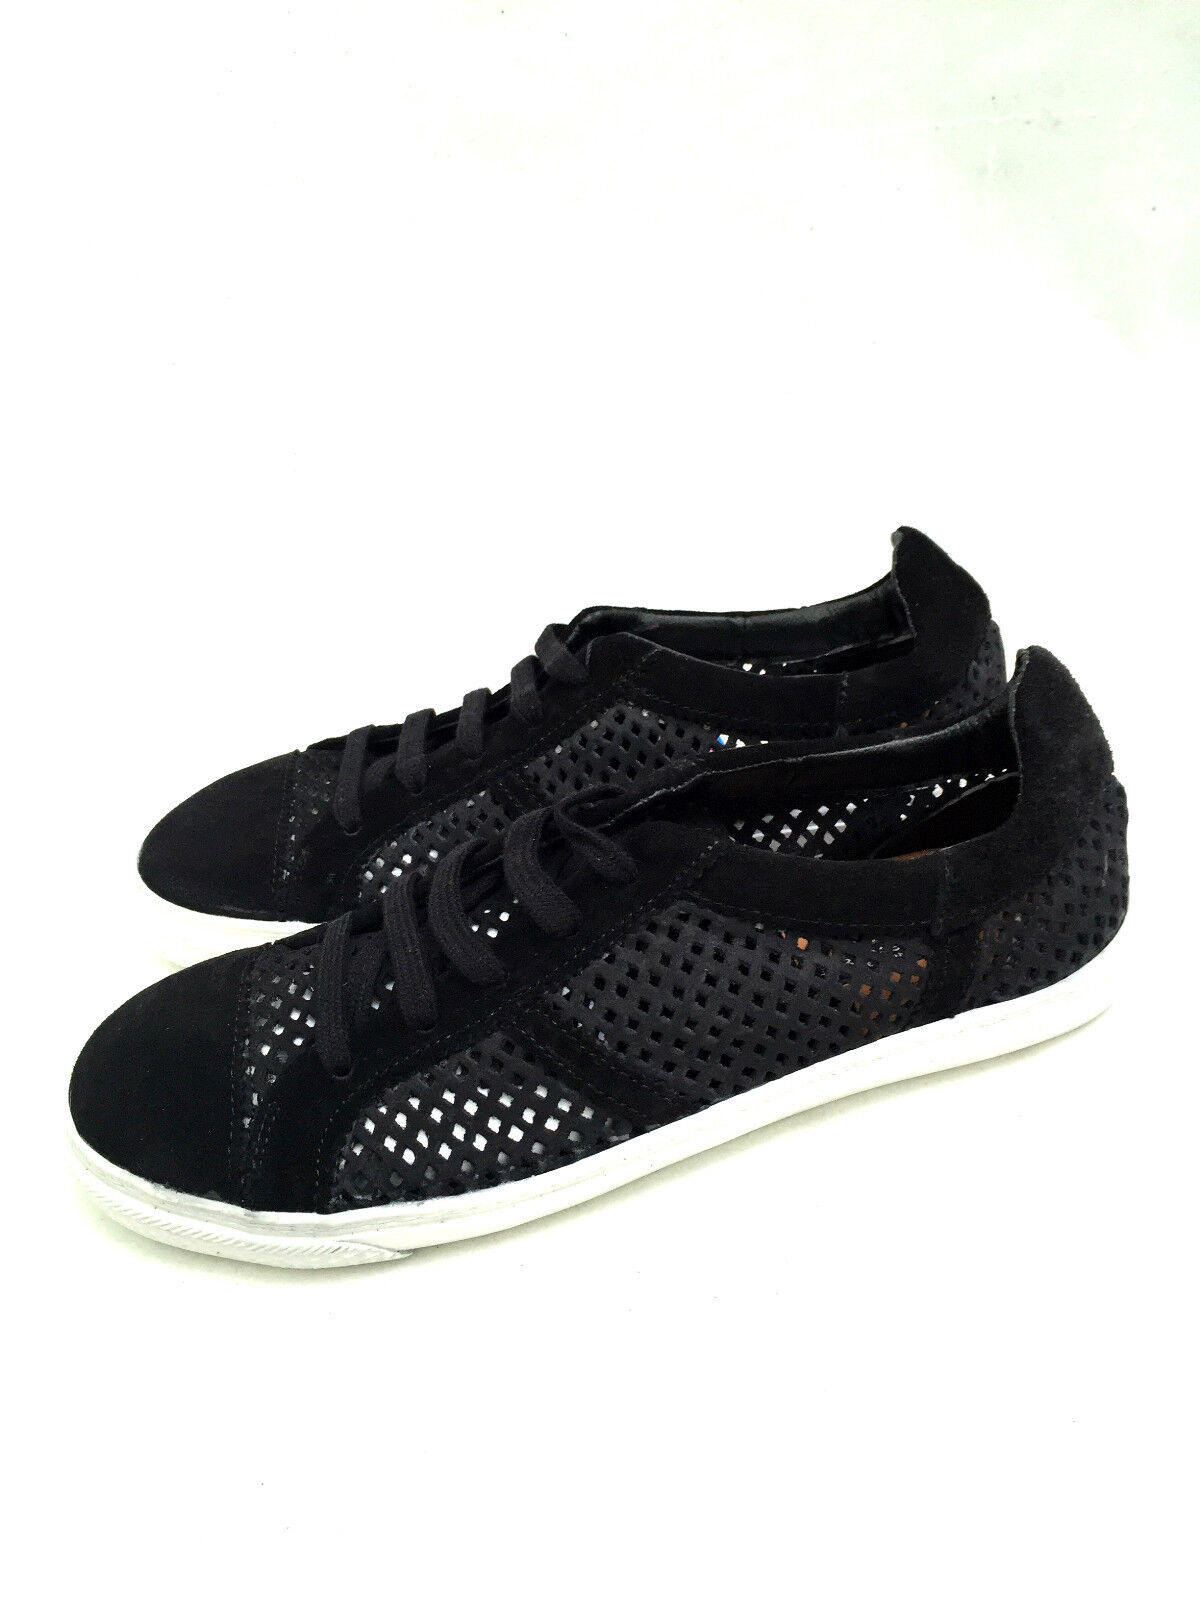 ZARA BLACK TRAINERS LEATHER TRAINERS BLACK SNEAKERS SIZE UK5/EUR38/US7.5 772604